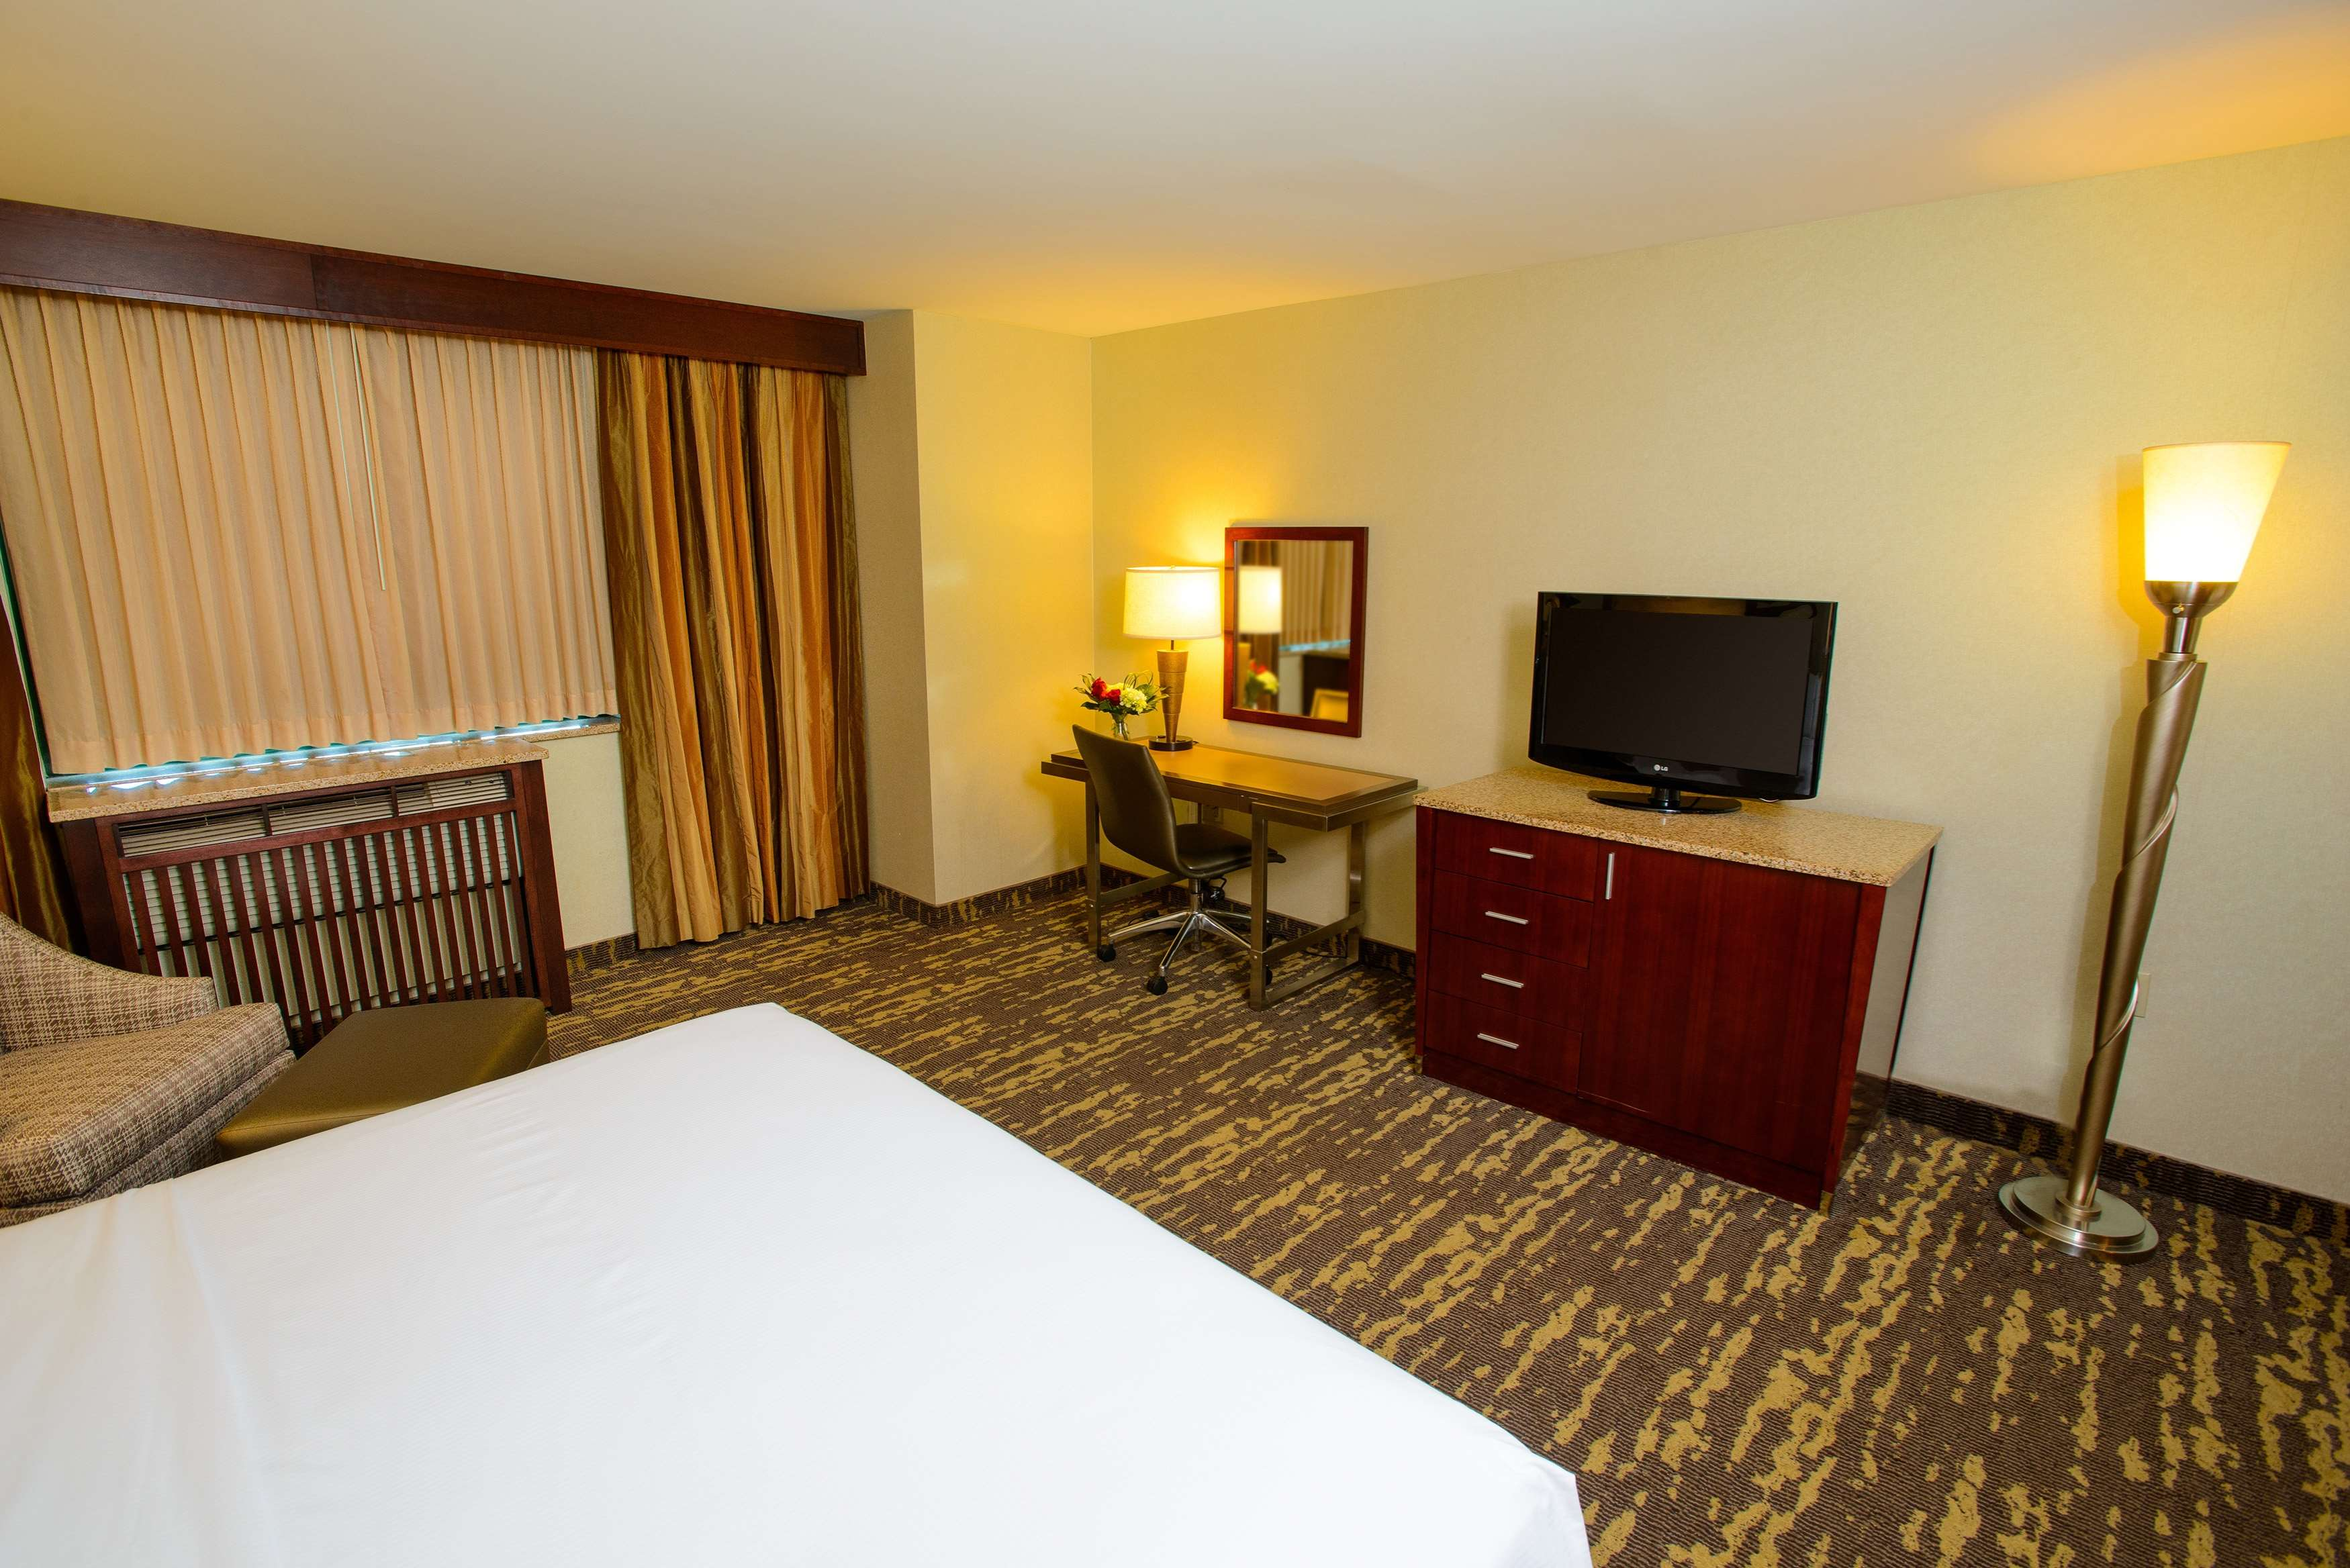 DoubleTree by Hilton Hotel Rochester - Mayo Clinic Area image 18